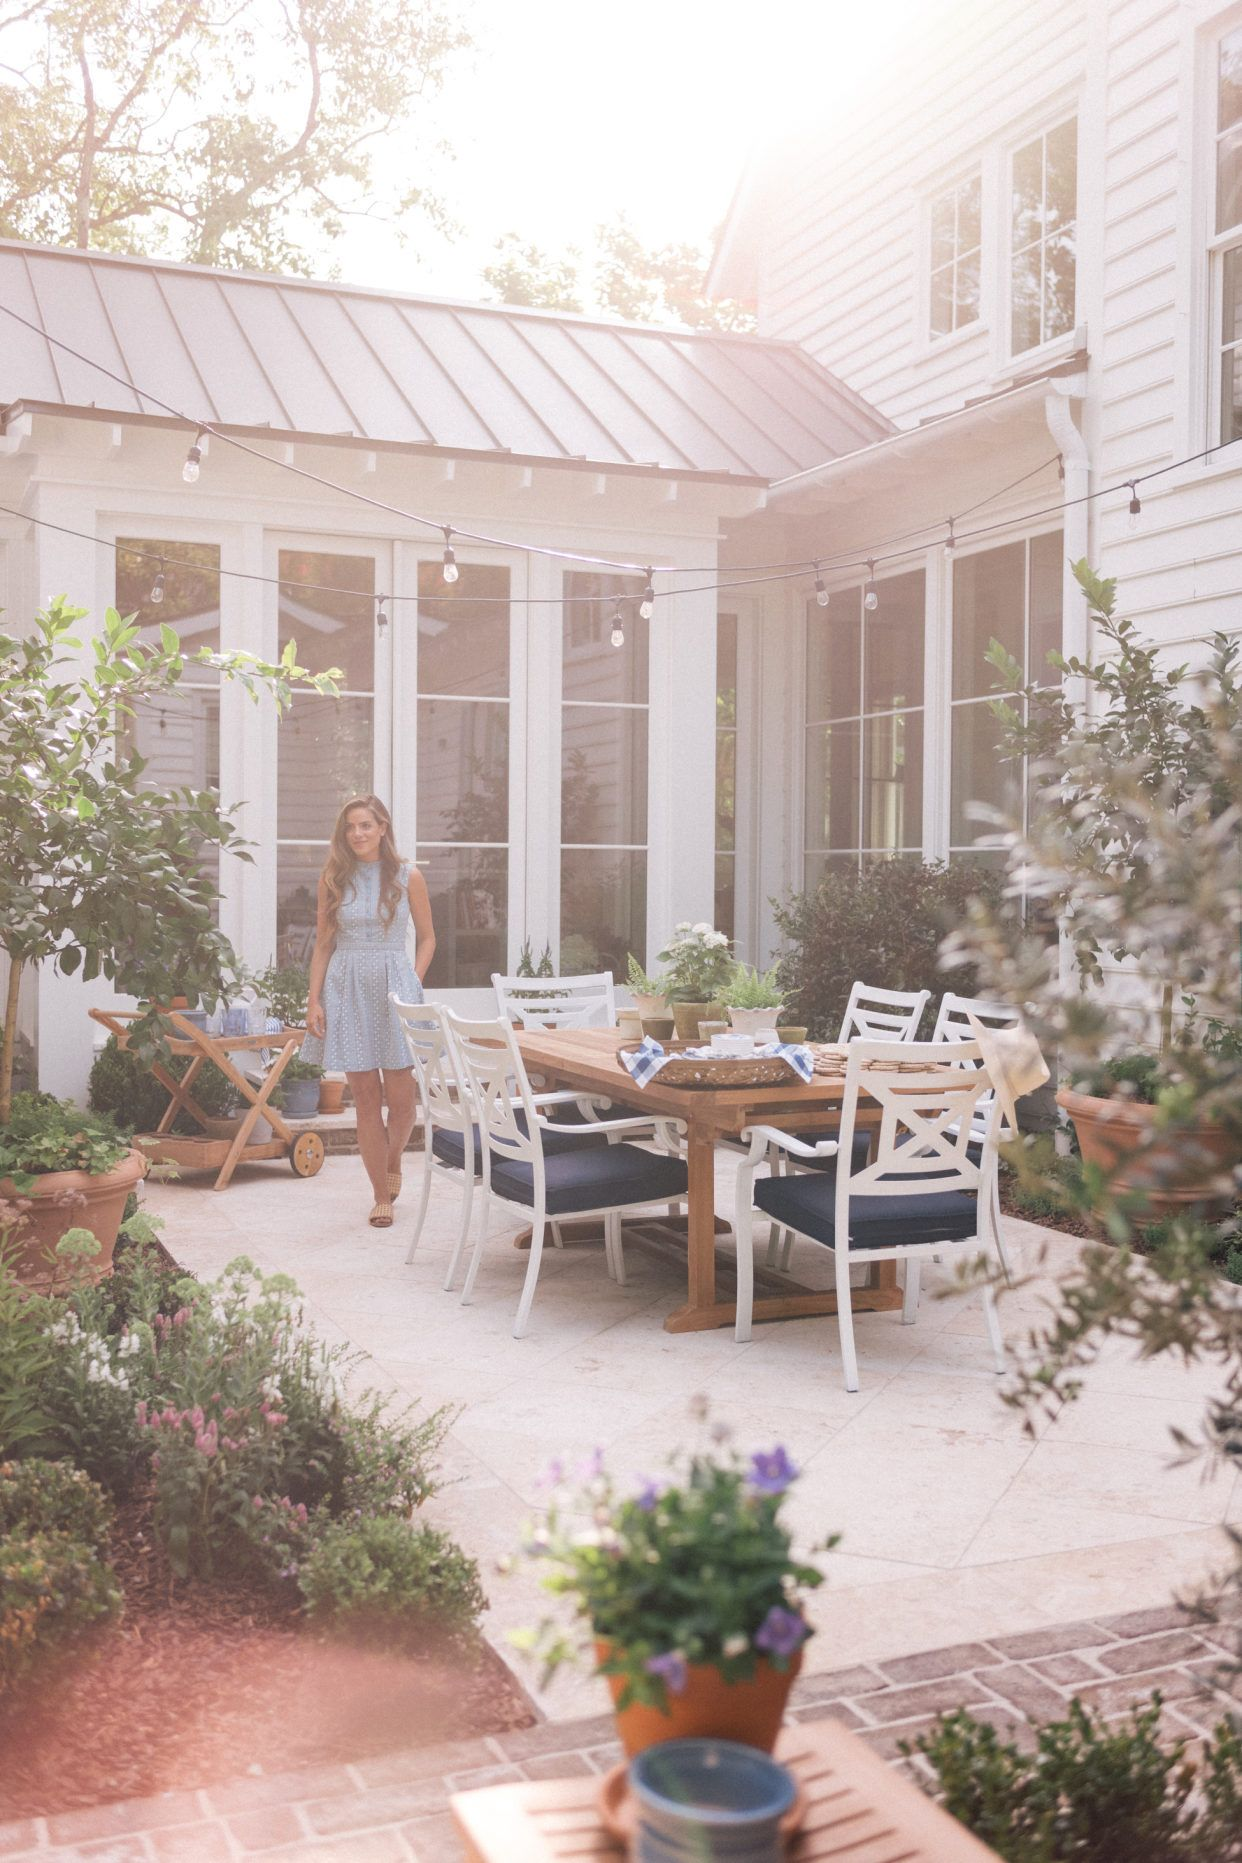 Julia Engel's Gorgeous Backyard Makeover Will Make You Crave Eternal Summer